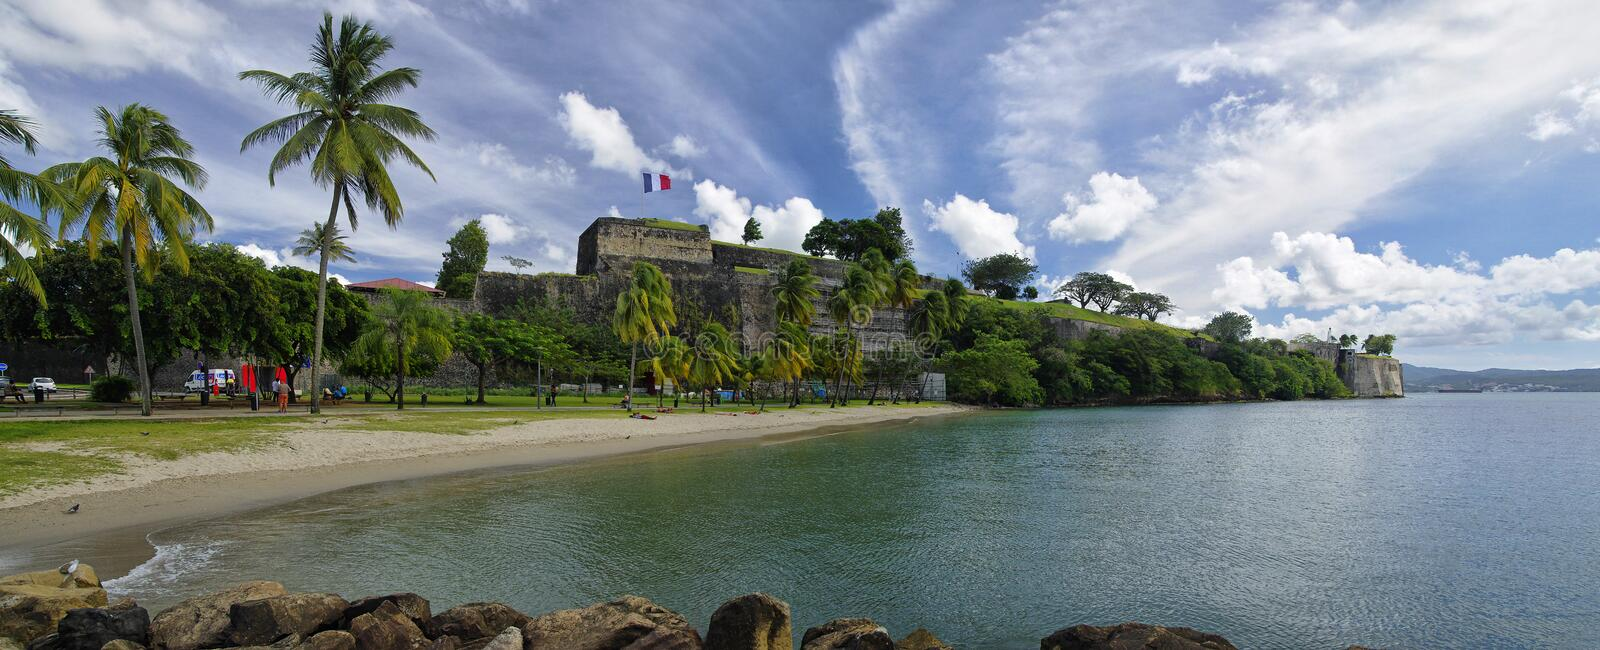 The beach in center of Fort de France near walls of Fort Saint Louis. Fort de Franc stock image